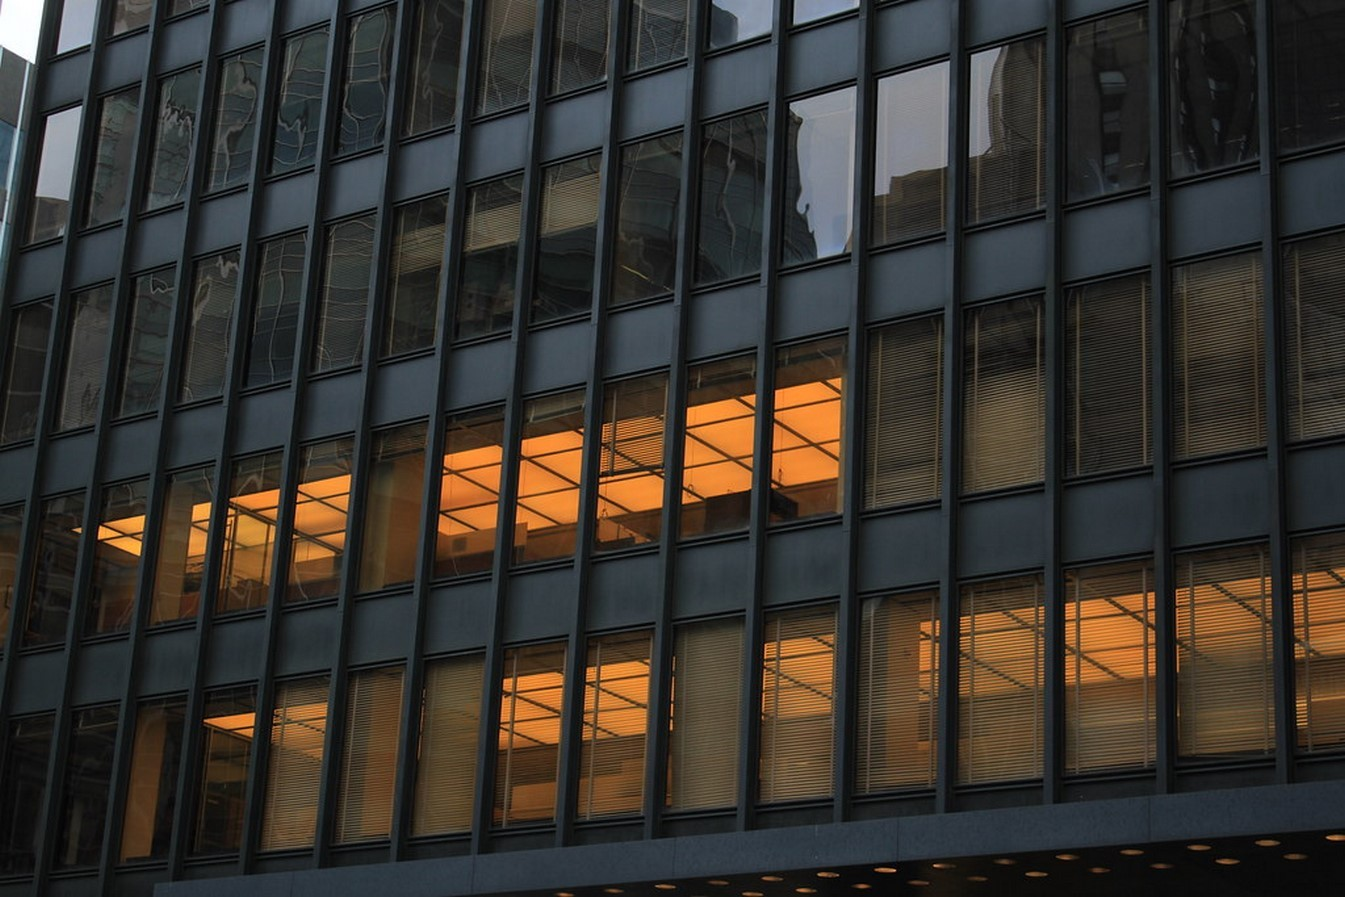 Seagram Building by Ludwig Mies van der Rohe: Mies' first attempt at tall buildings - Sheet4